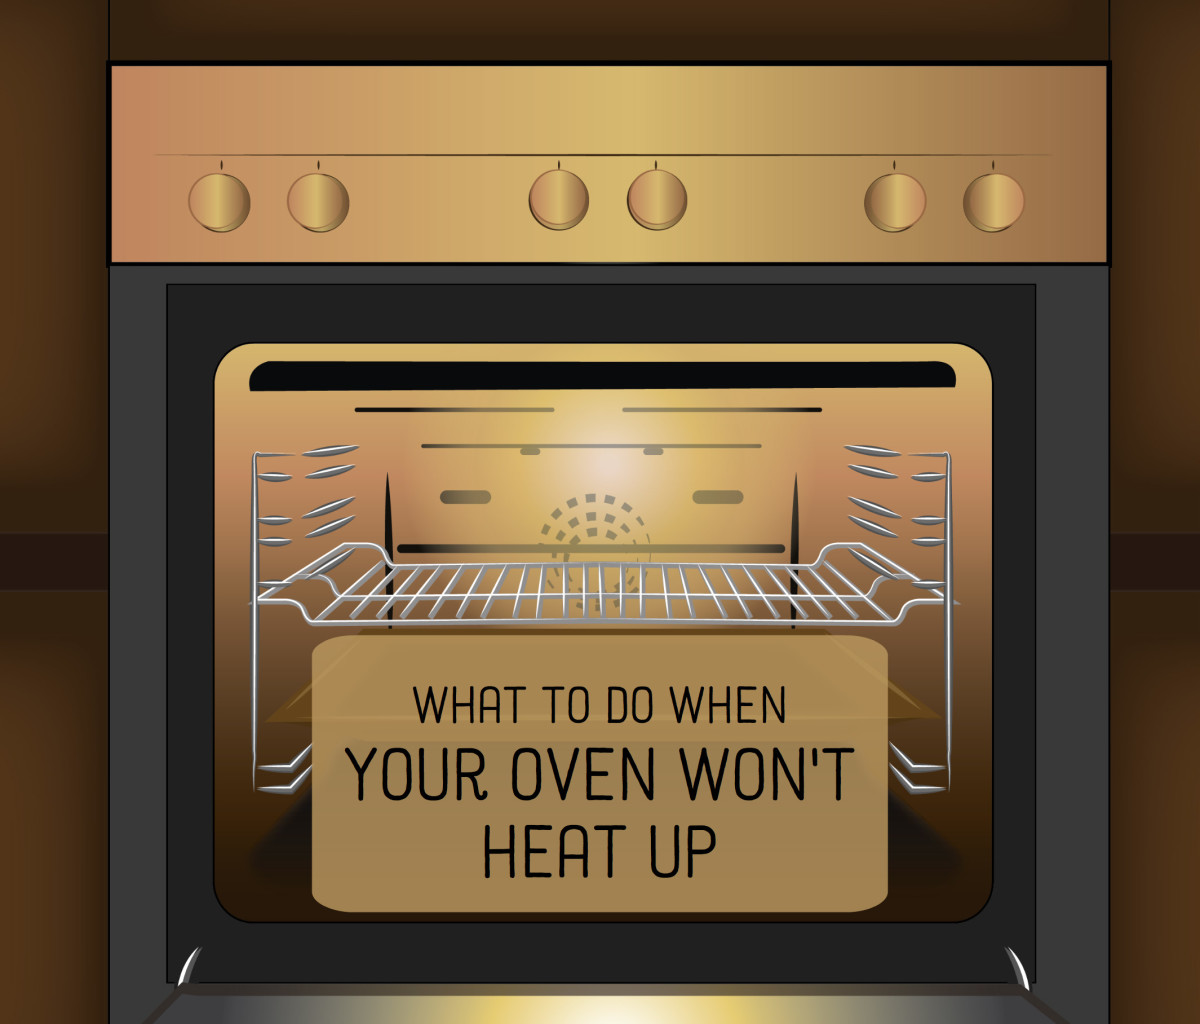 Marvelous Reasons Why Your Gas Or Electric Oven Heating Dengarden Gas Oven Wont Light But Broiler Works Gas Oven Won T Light When Hot houzz-03 Gas Oven Wont Light